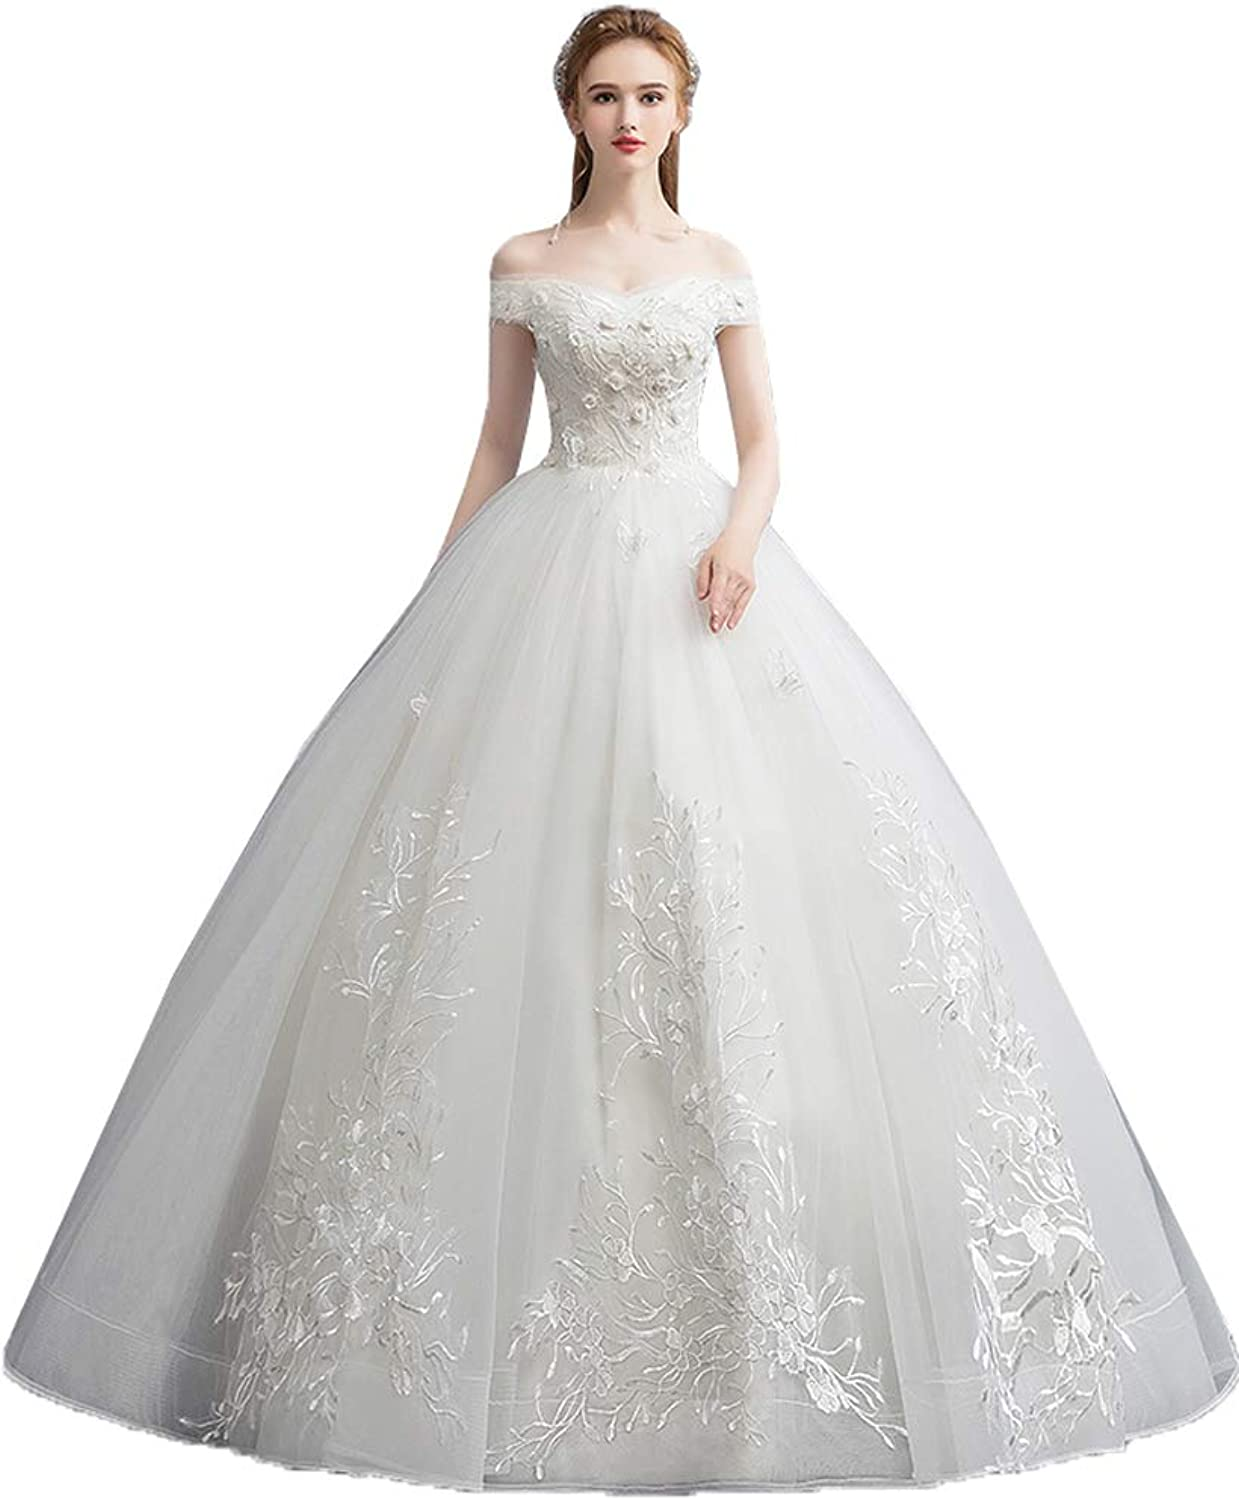 Onlybridal Women's Sleeveless Quinceanera Dresses Ball Gown Tulle Lace Formal Prom Gowns Plus Size